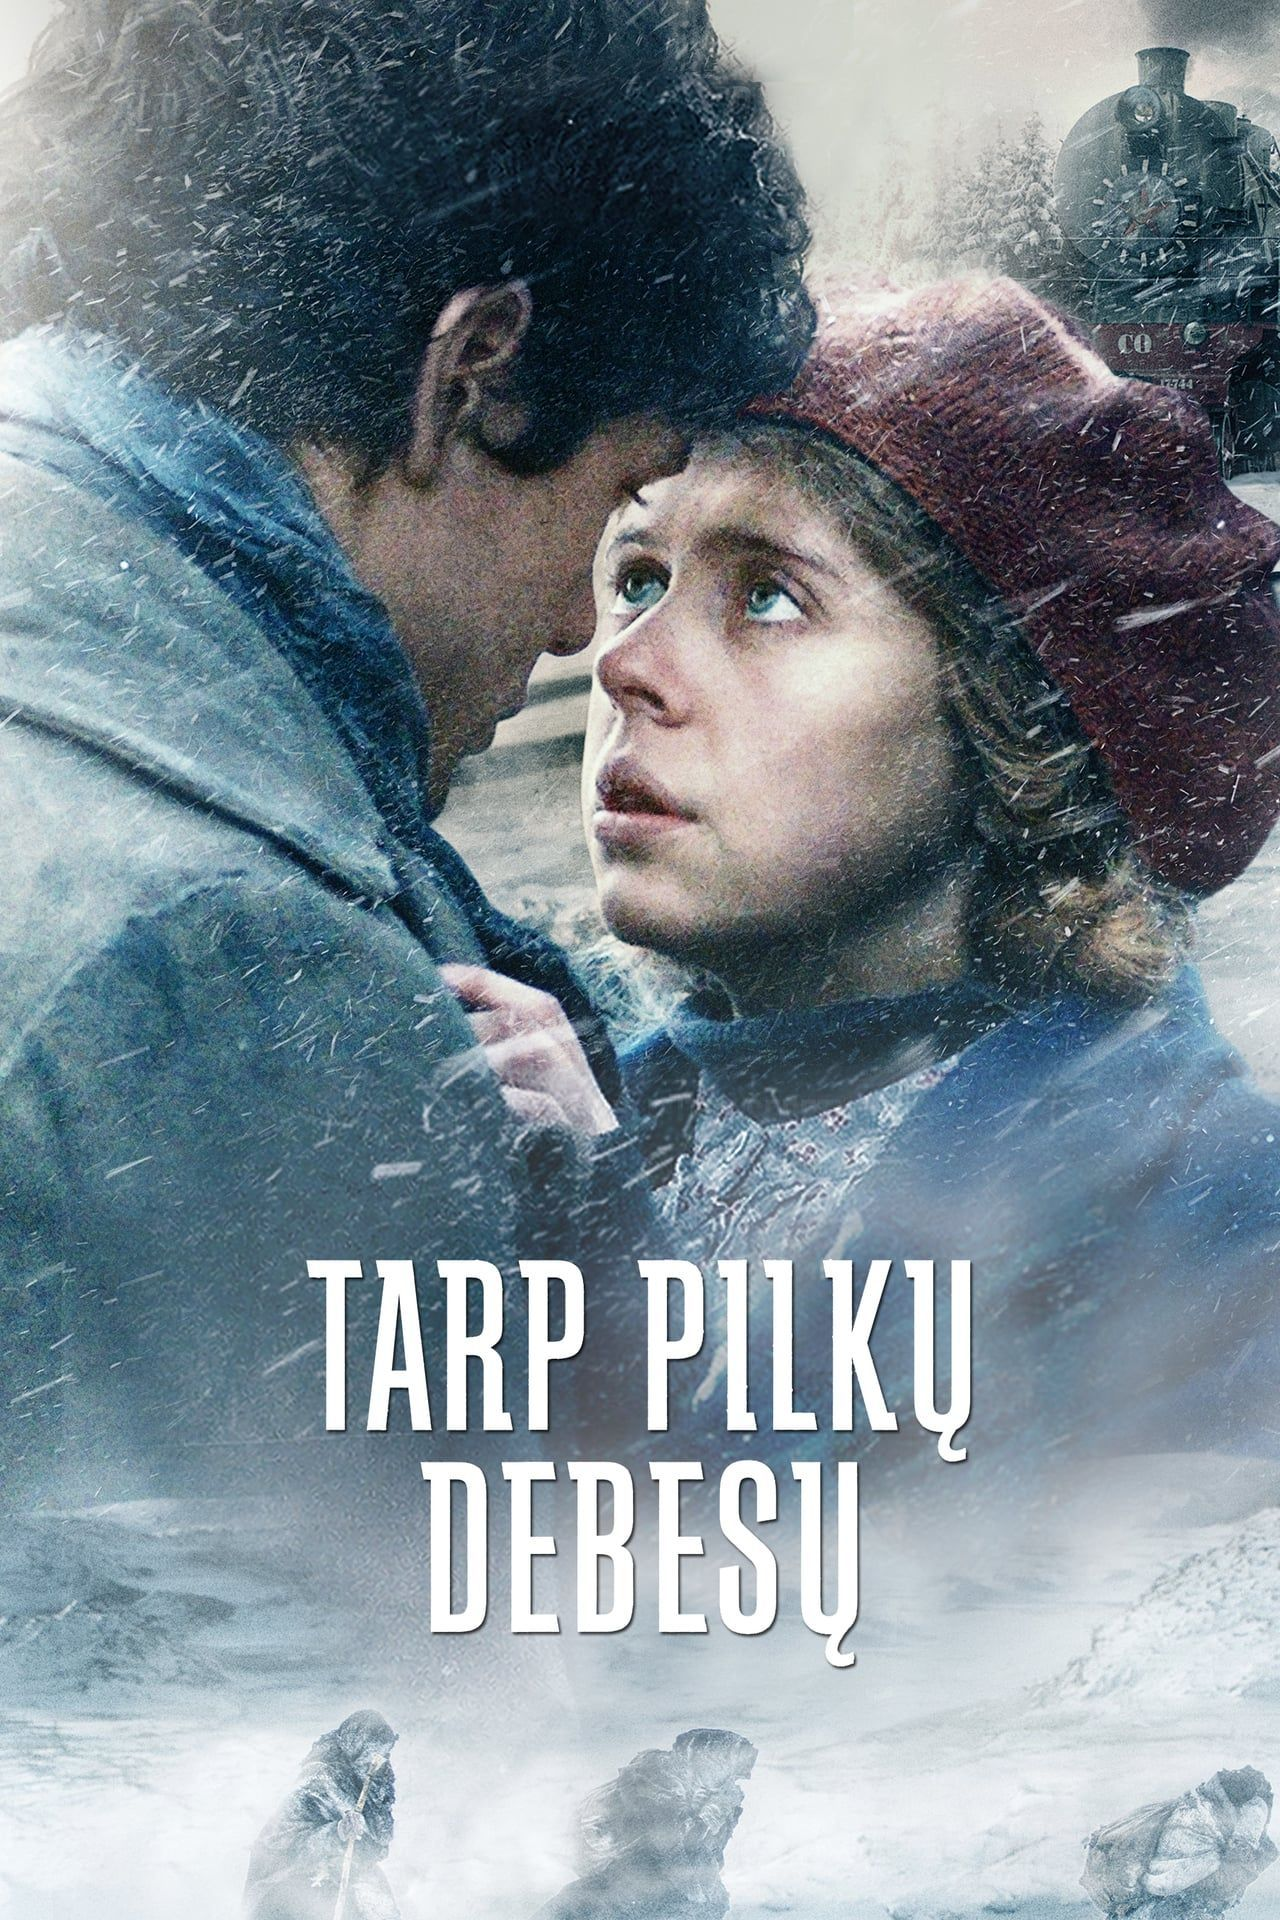 Ashes In The Snow 2018 In 1941 A 16 Year Old Aspiring Artist And Her Family Are Deported To Siberia Amidst S Ashes In The Snow Snow Movie Free Movies Online